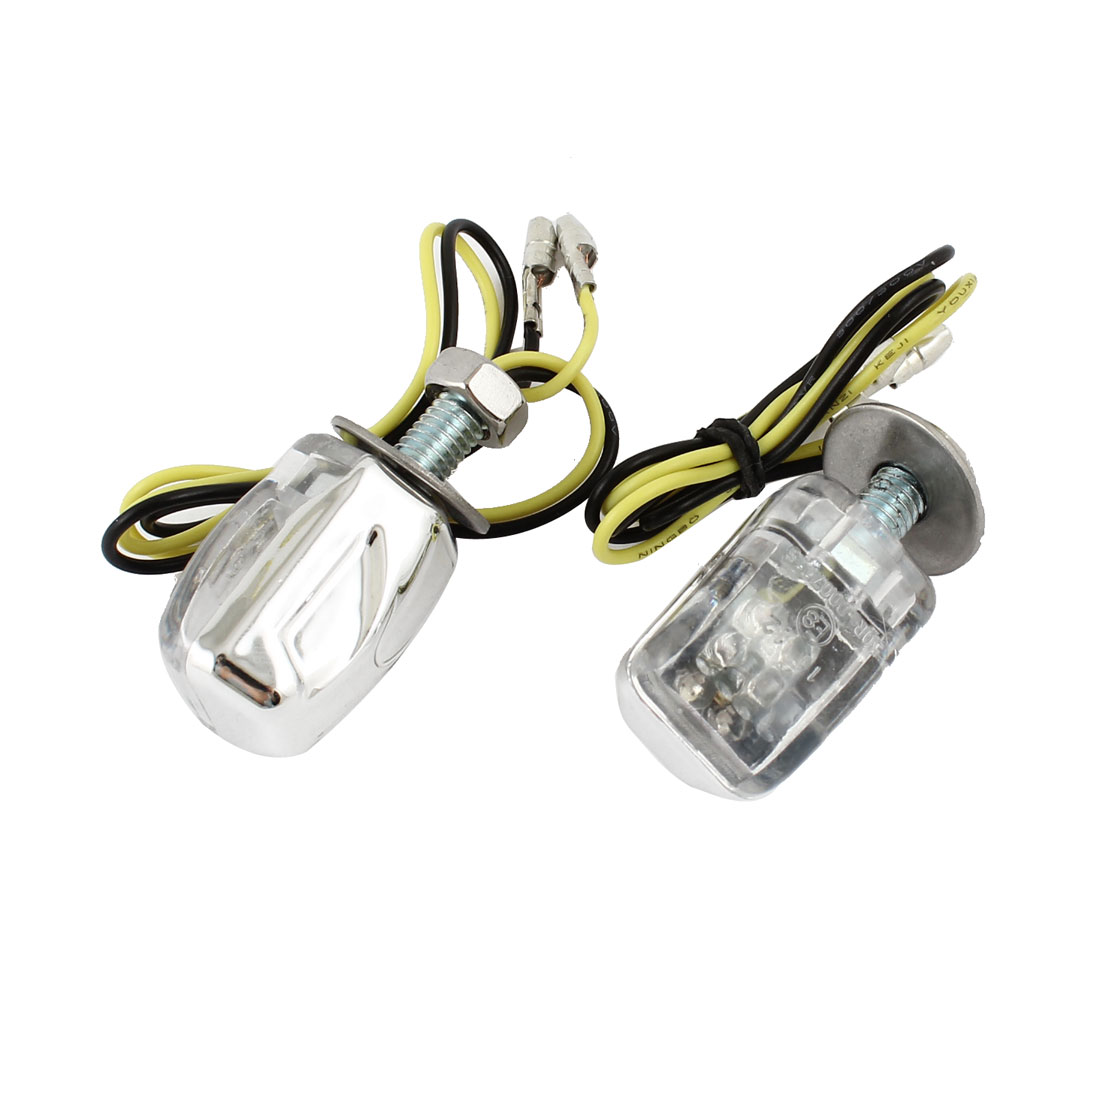 2 Pcs DC 12V Amber 6 LED 6mm Bolt Dia Turn Signal Light Indicator Lamps for Motorcycle